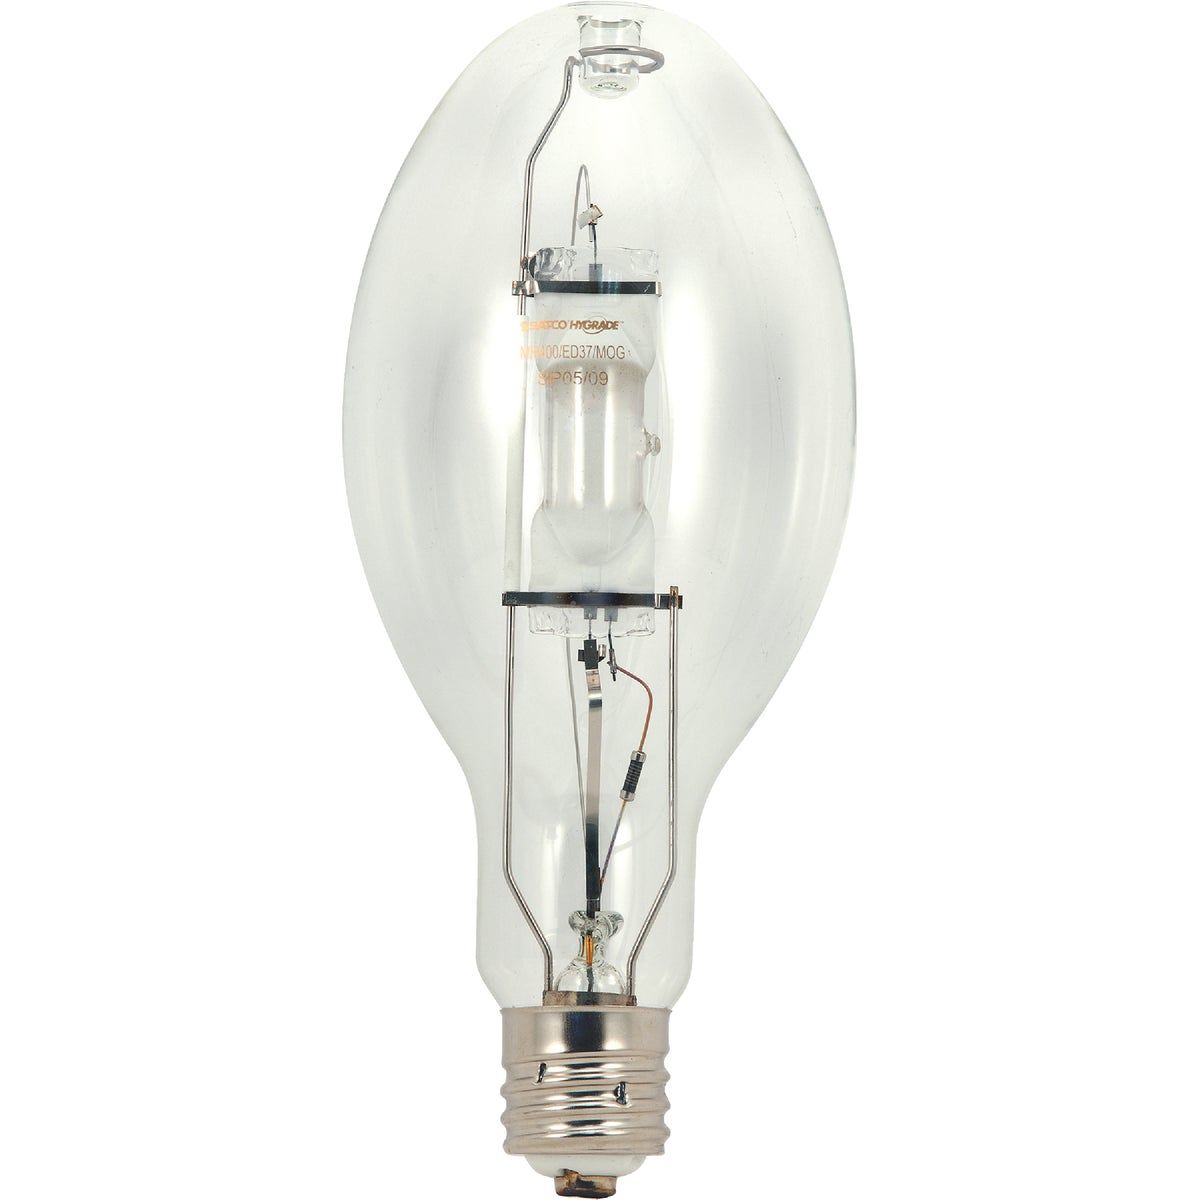 175W METAL HALIDE BULB - 37020 by Westinghouse Lightng